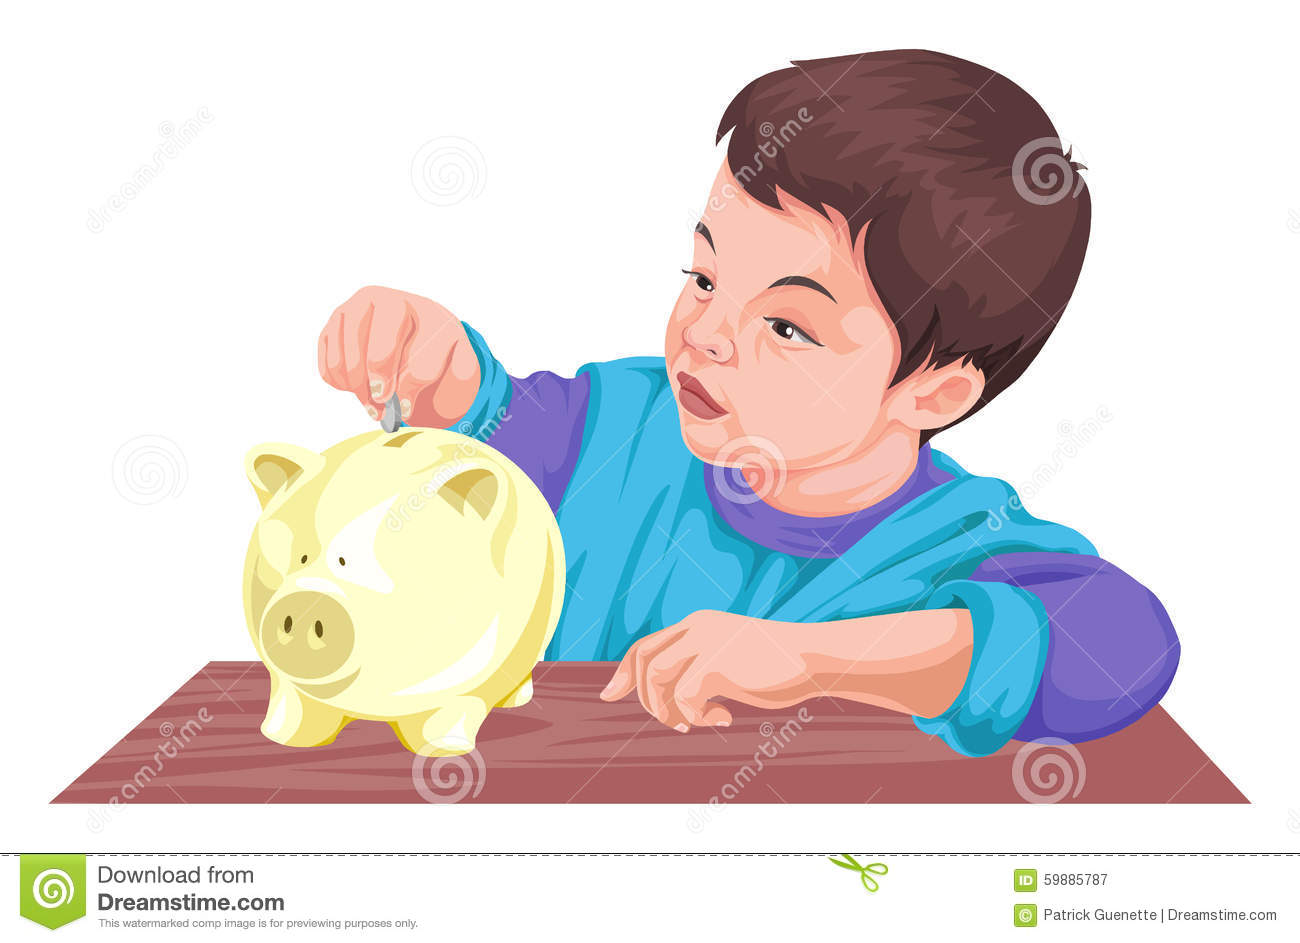 Piggy bank clipart kids saving image stock Piggy bank clipart kids saving - ClipartFest image stock